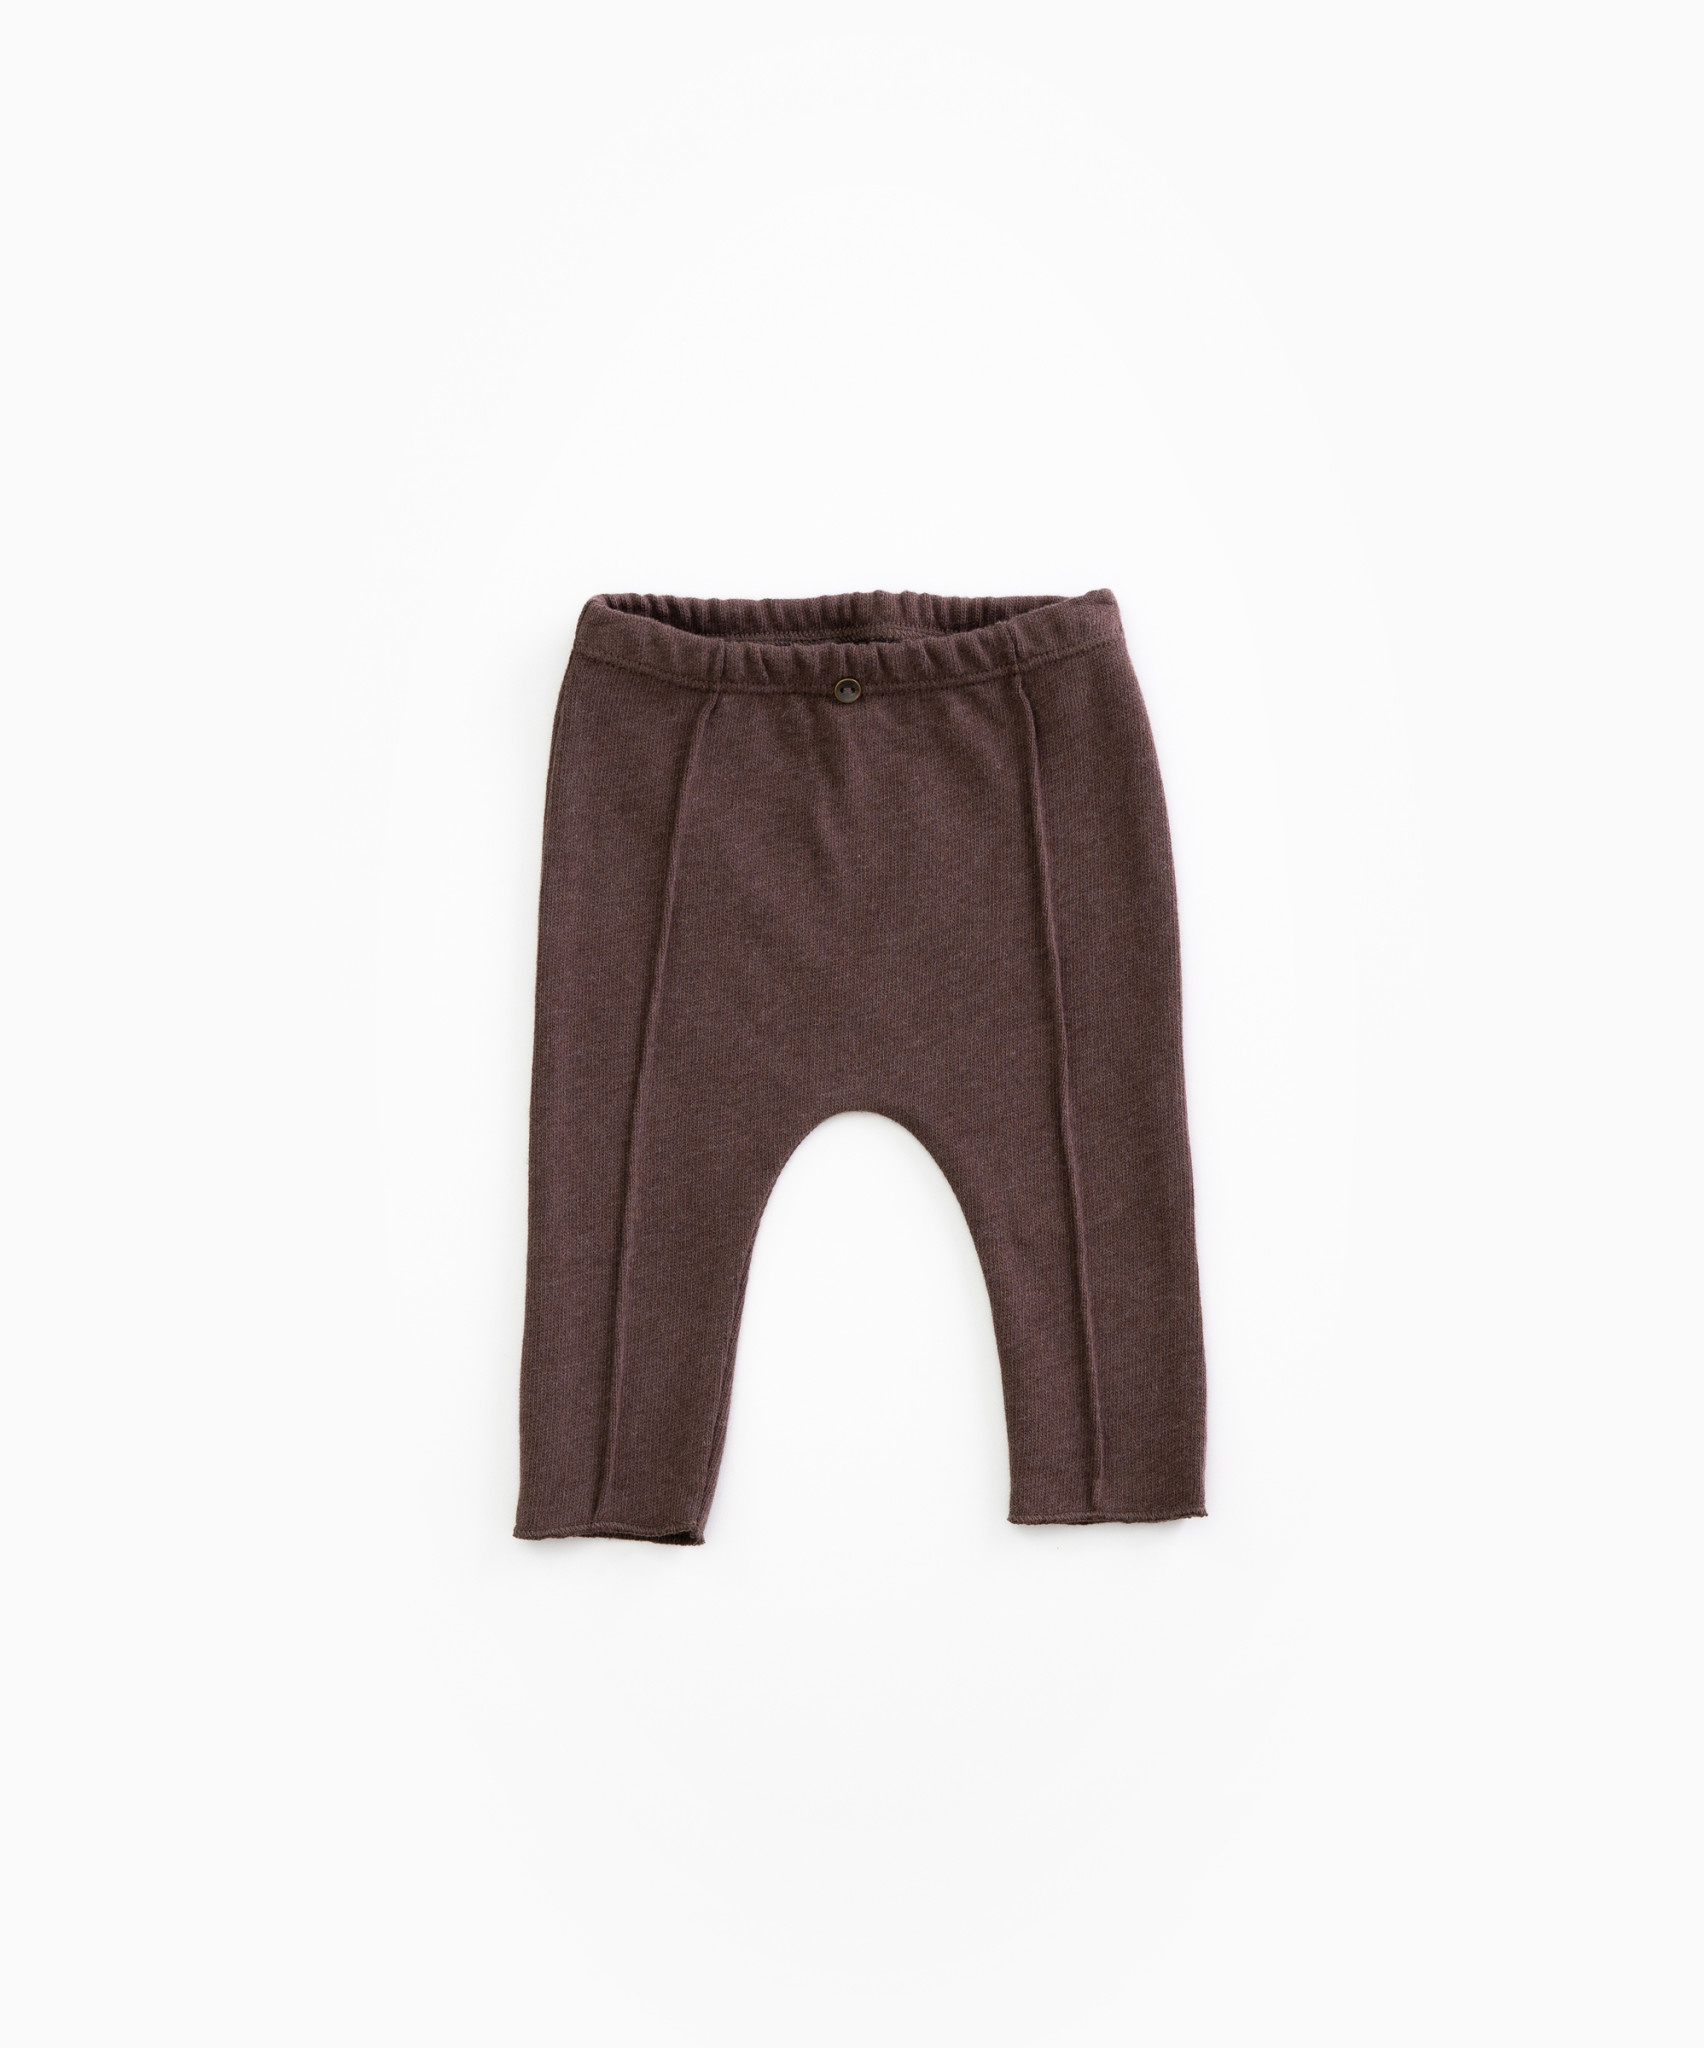 Play Up Play up - Jersey trousers walnut